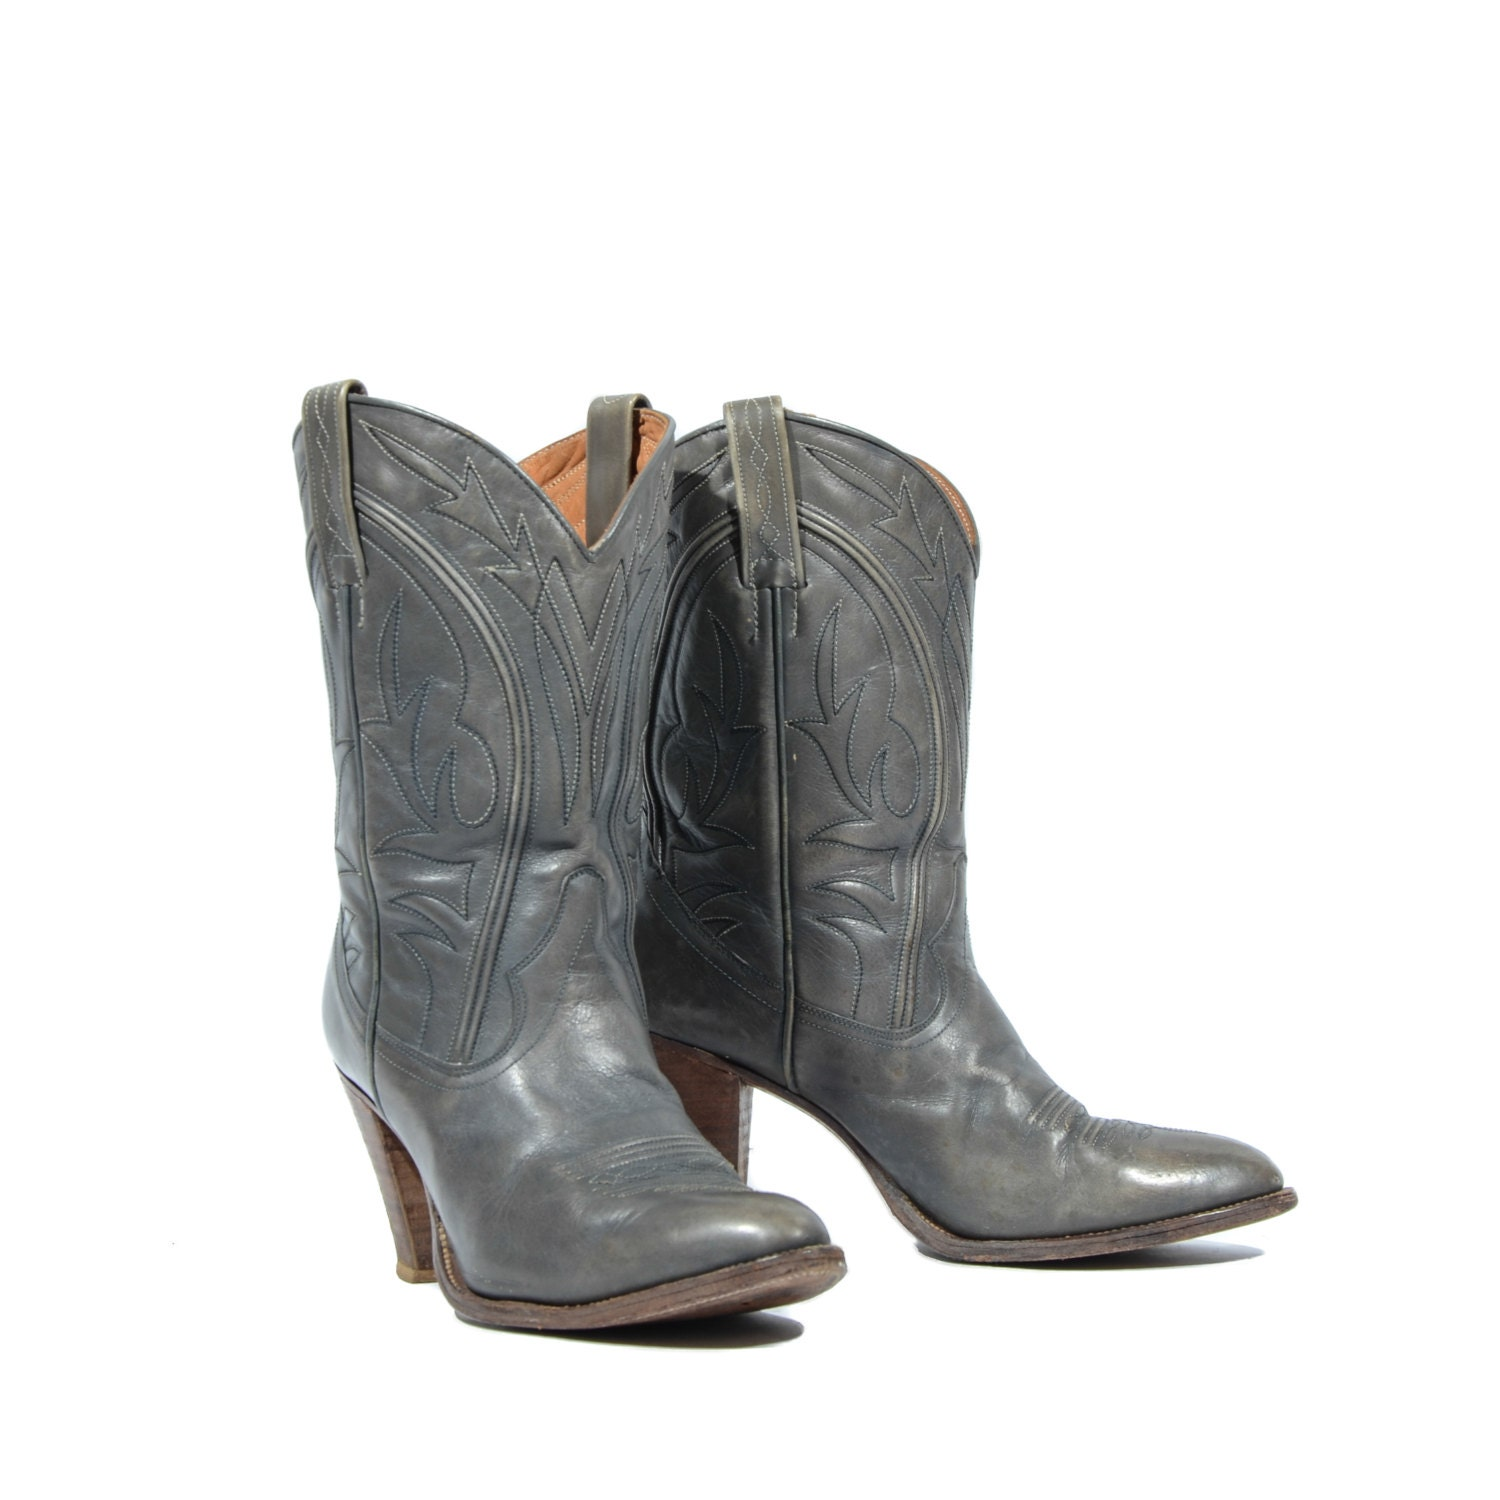 how to tell if frye boots are authentic